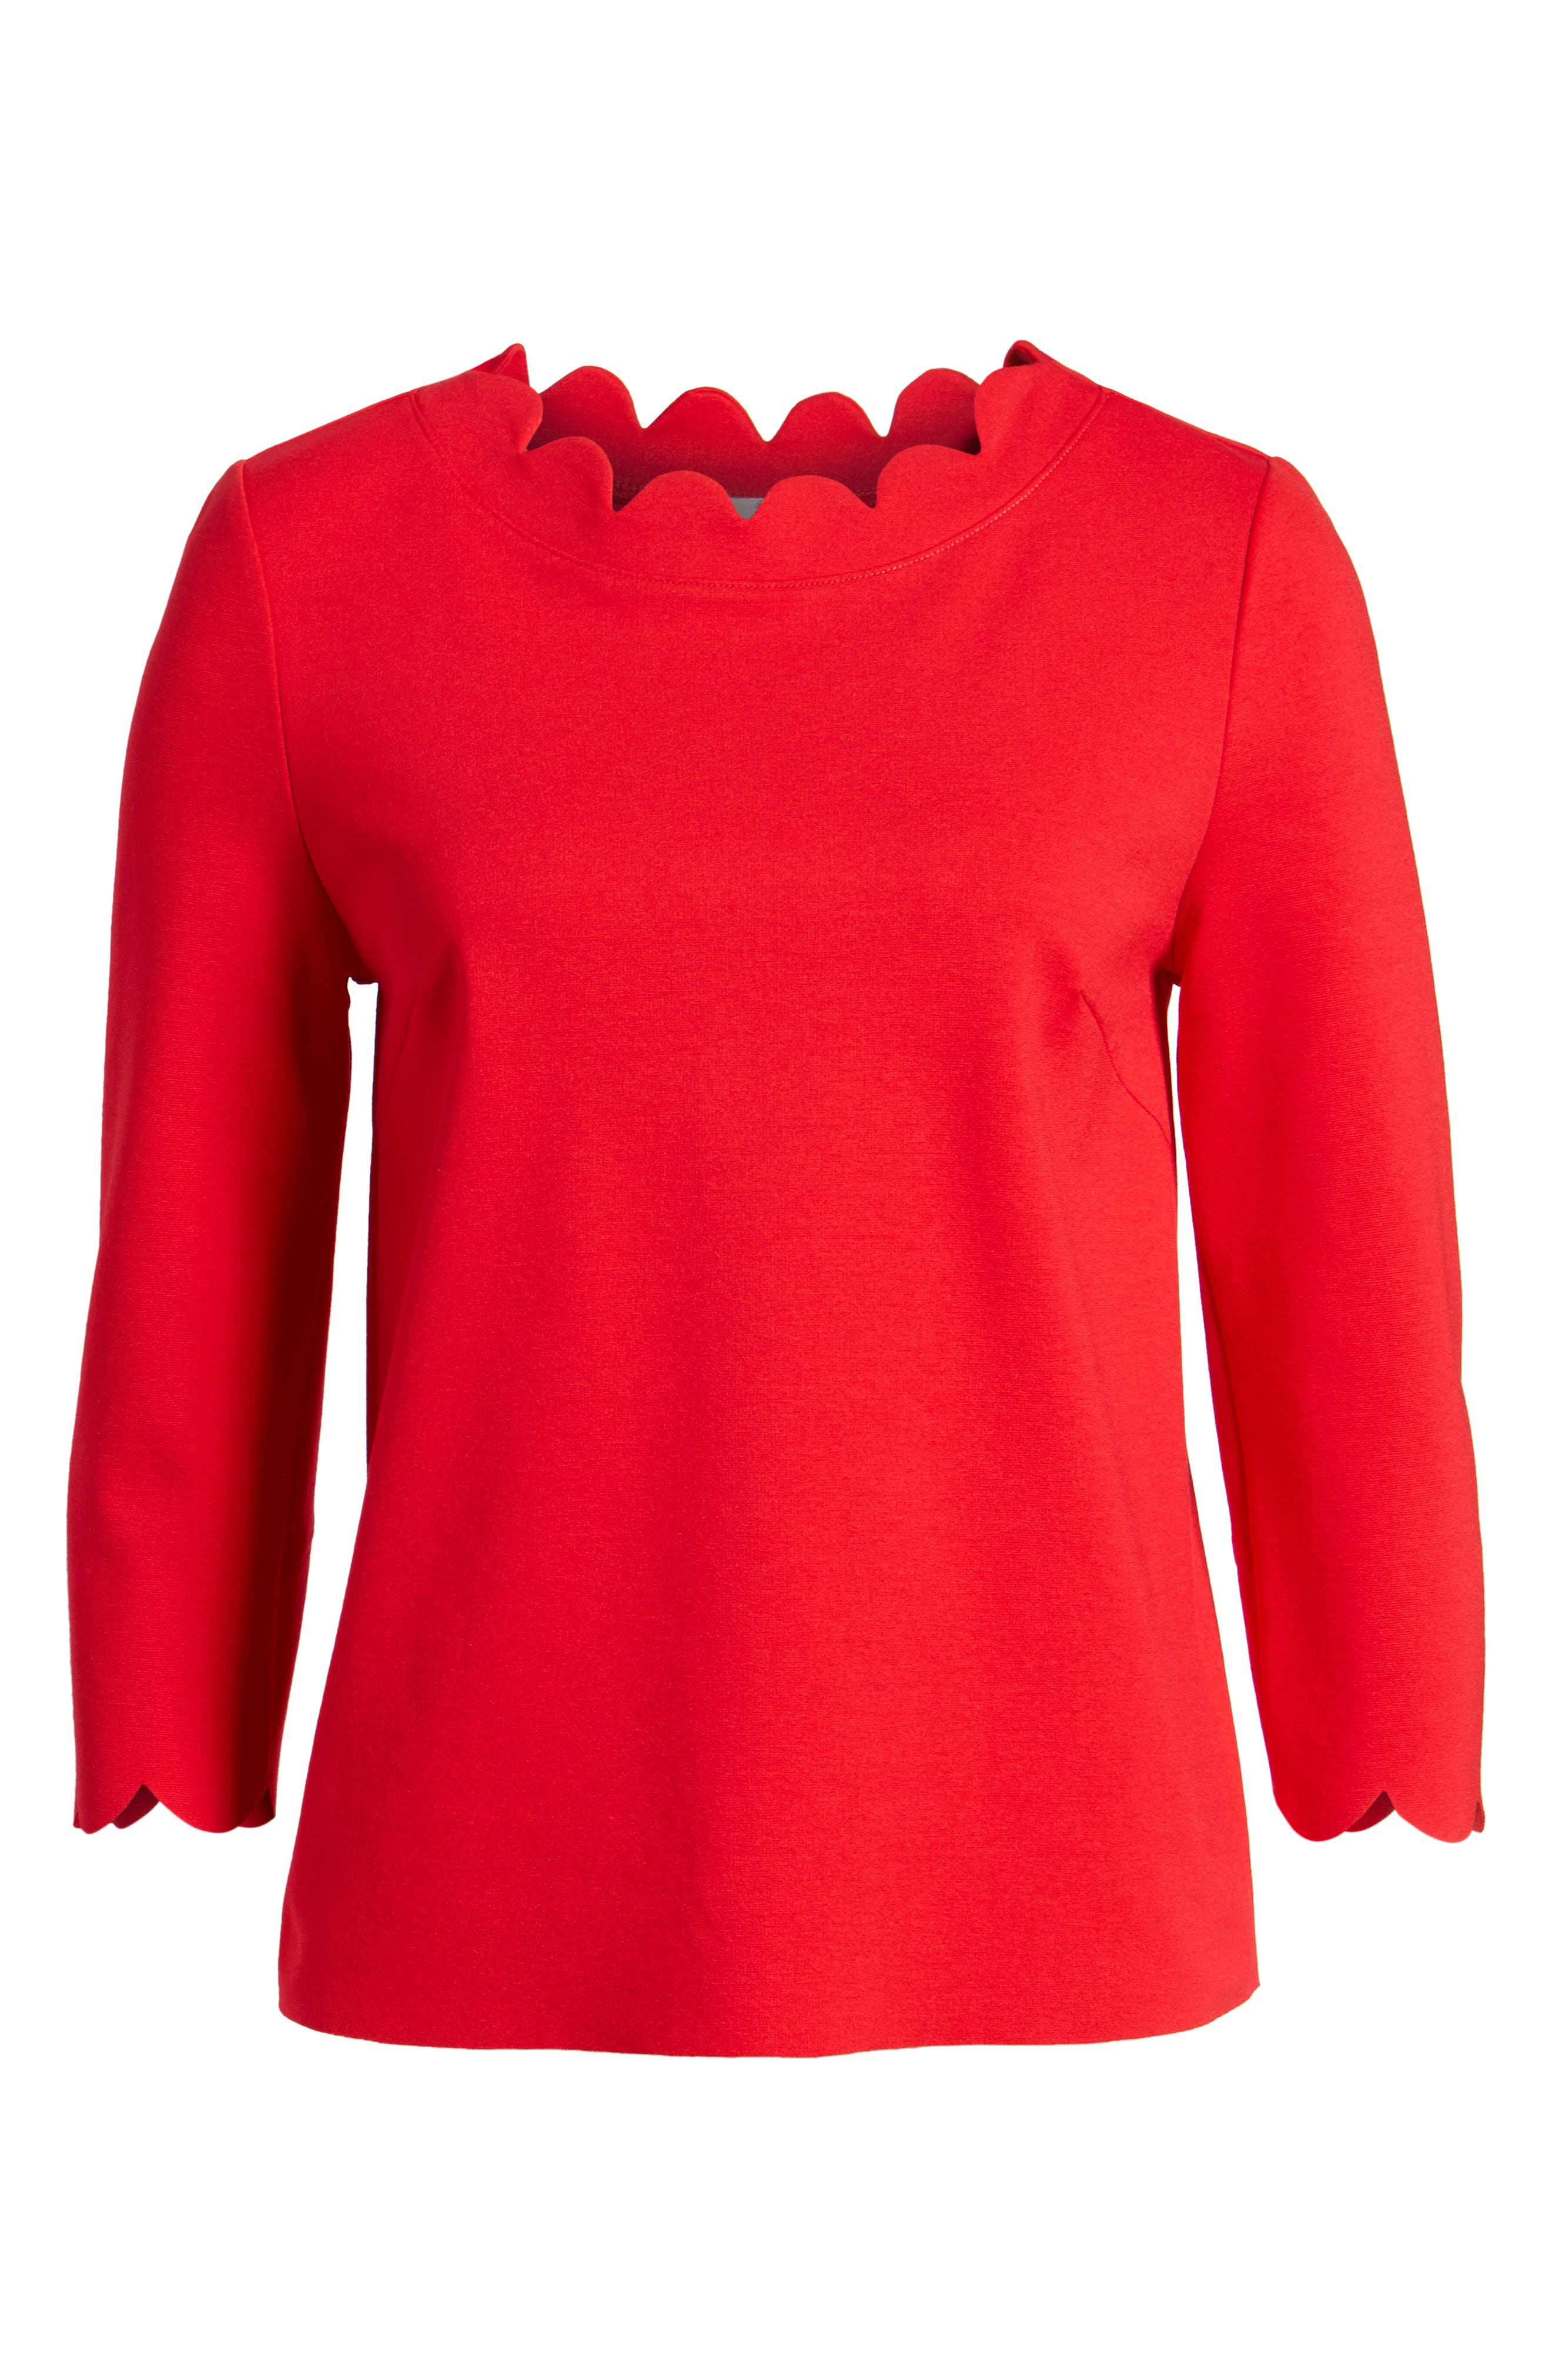 Ponte Scallop Top,                             Alternate thumbnail 7, color,                             Red